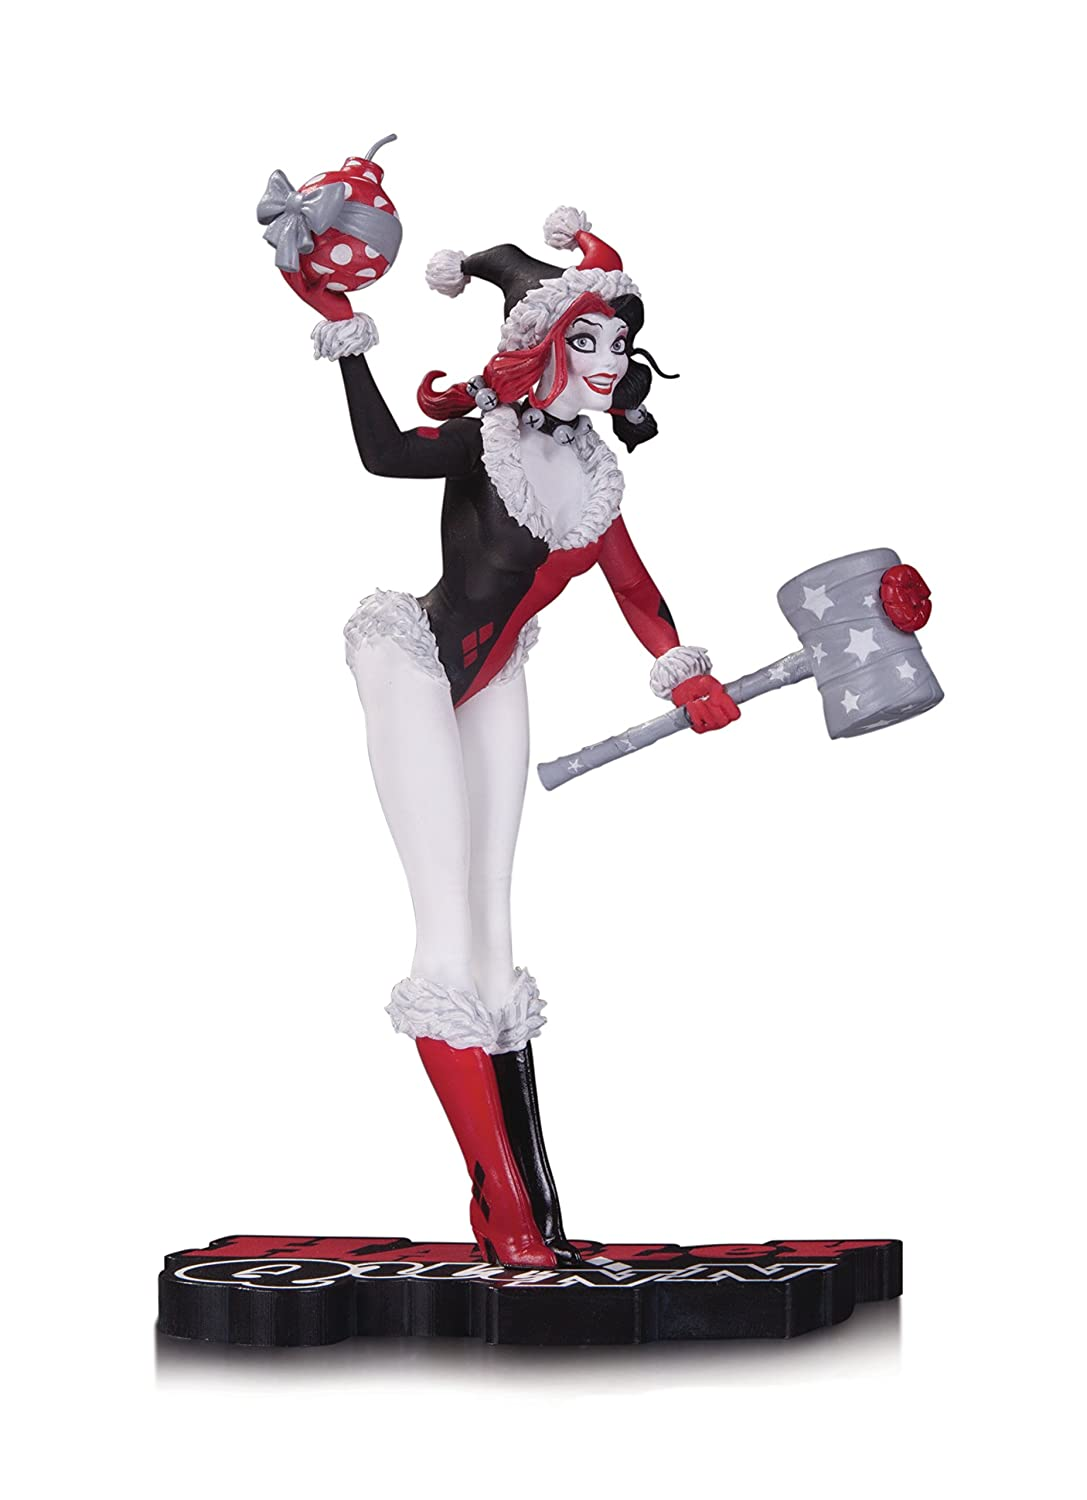 DC Comics MAY160361 Harley Quinn rosso nero & bianca Holiday statue